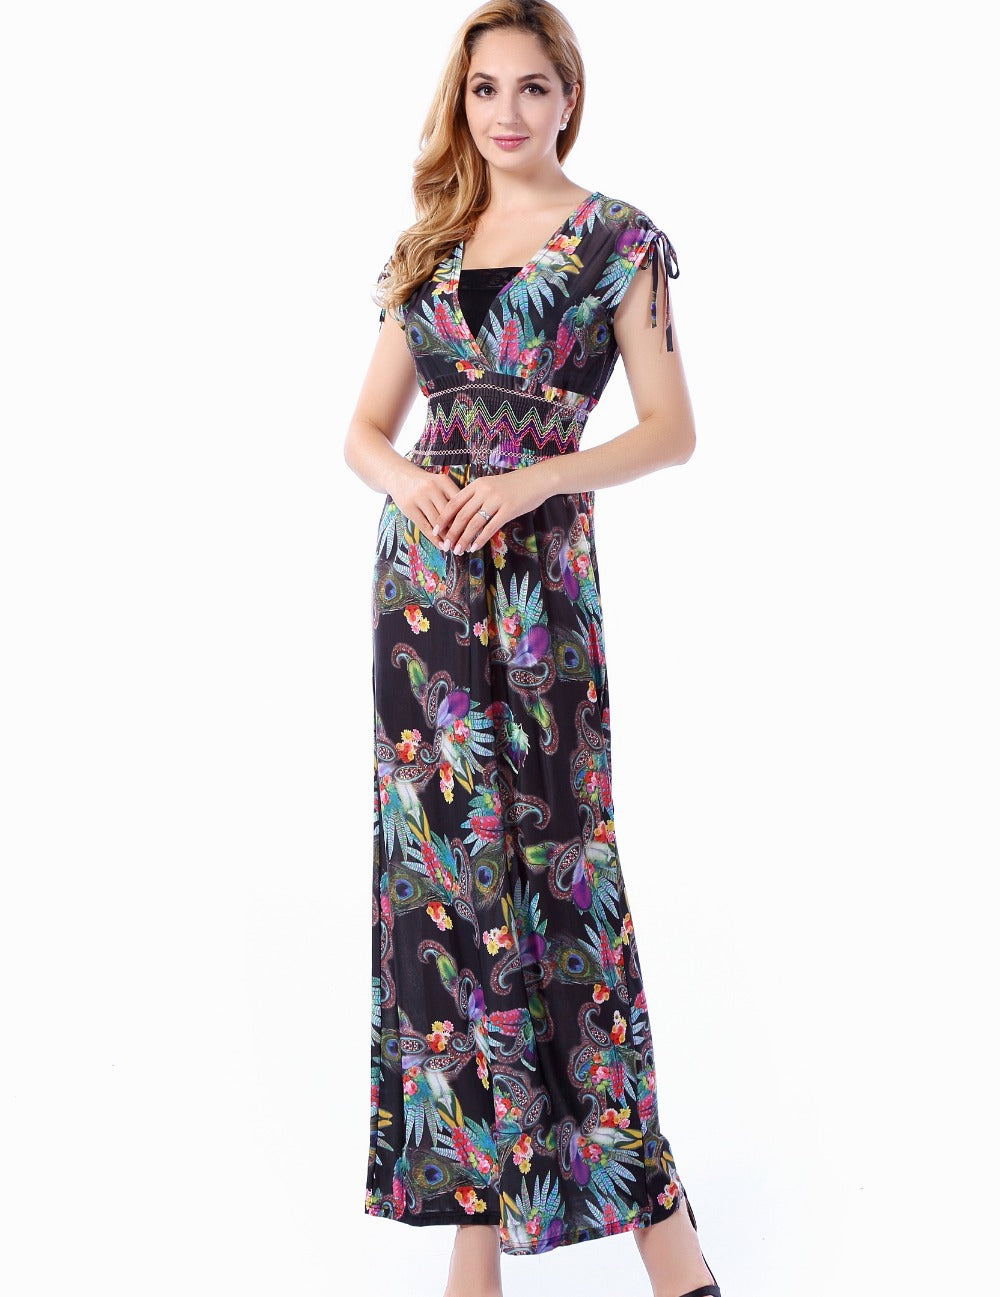 2017 Women Summer Beach Dress Sleeveless V Neck Long Maxi Dress 5XL